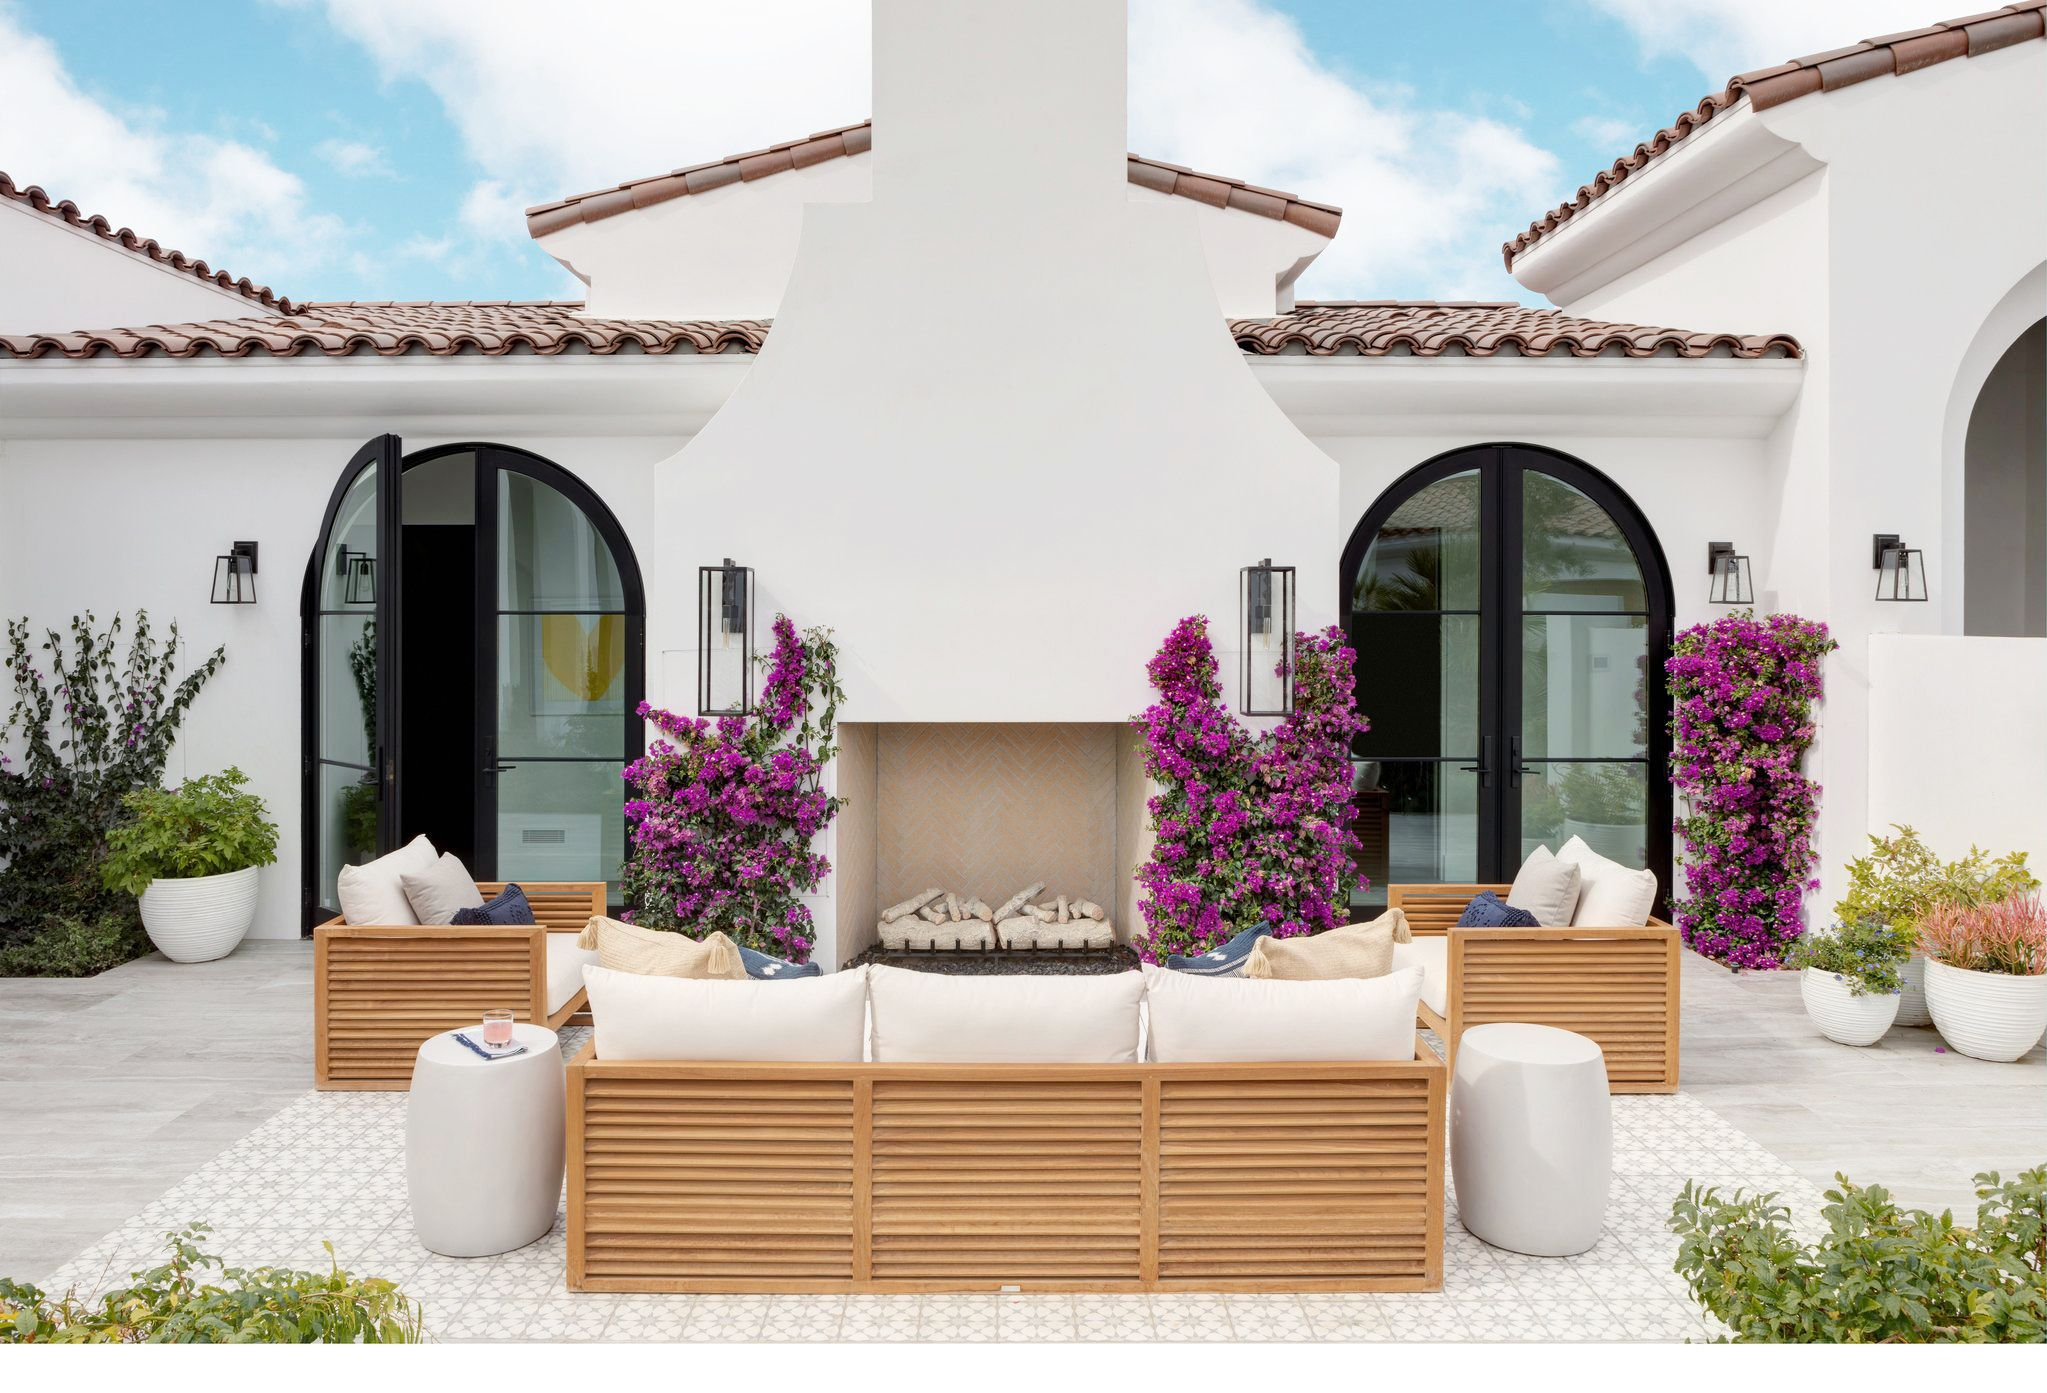 40 Best Patio Ideas for 2020 - Stylish Outdoor Patio ... on Backdoor Patio Ideas id=77730